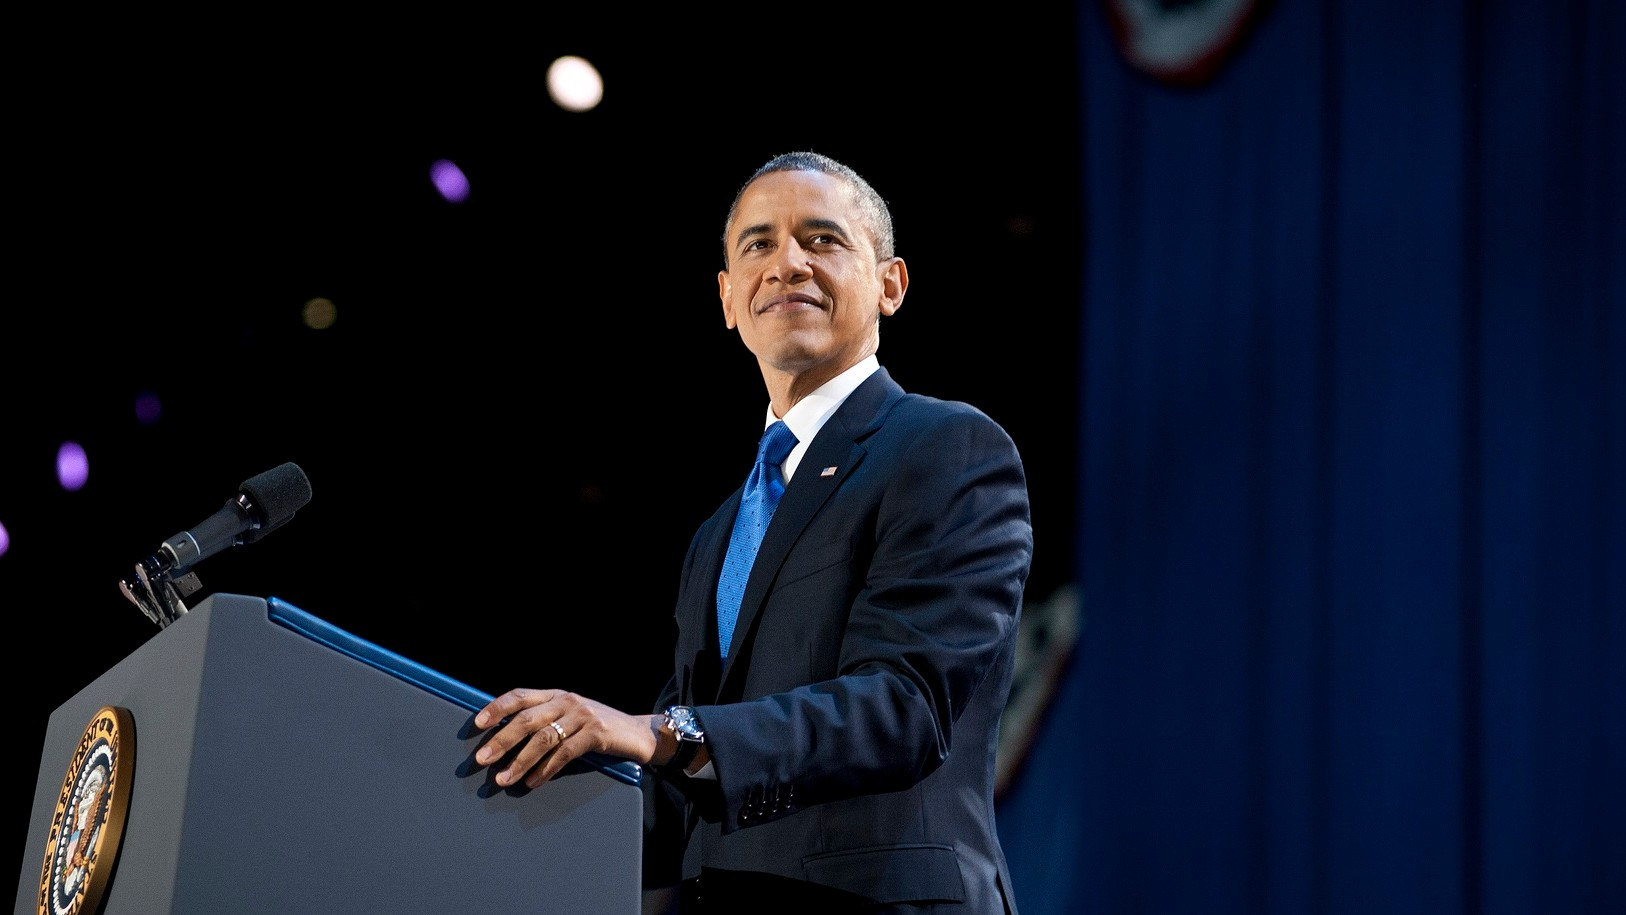 Obama Finally Endorsed Net Neutrality. Now What?